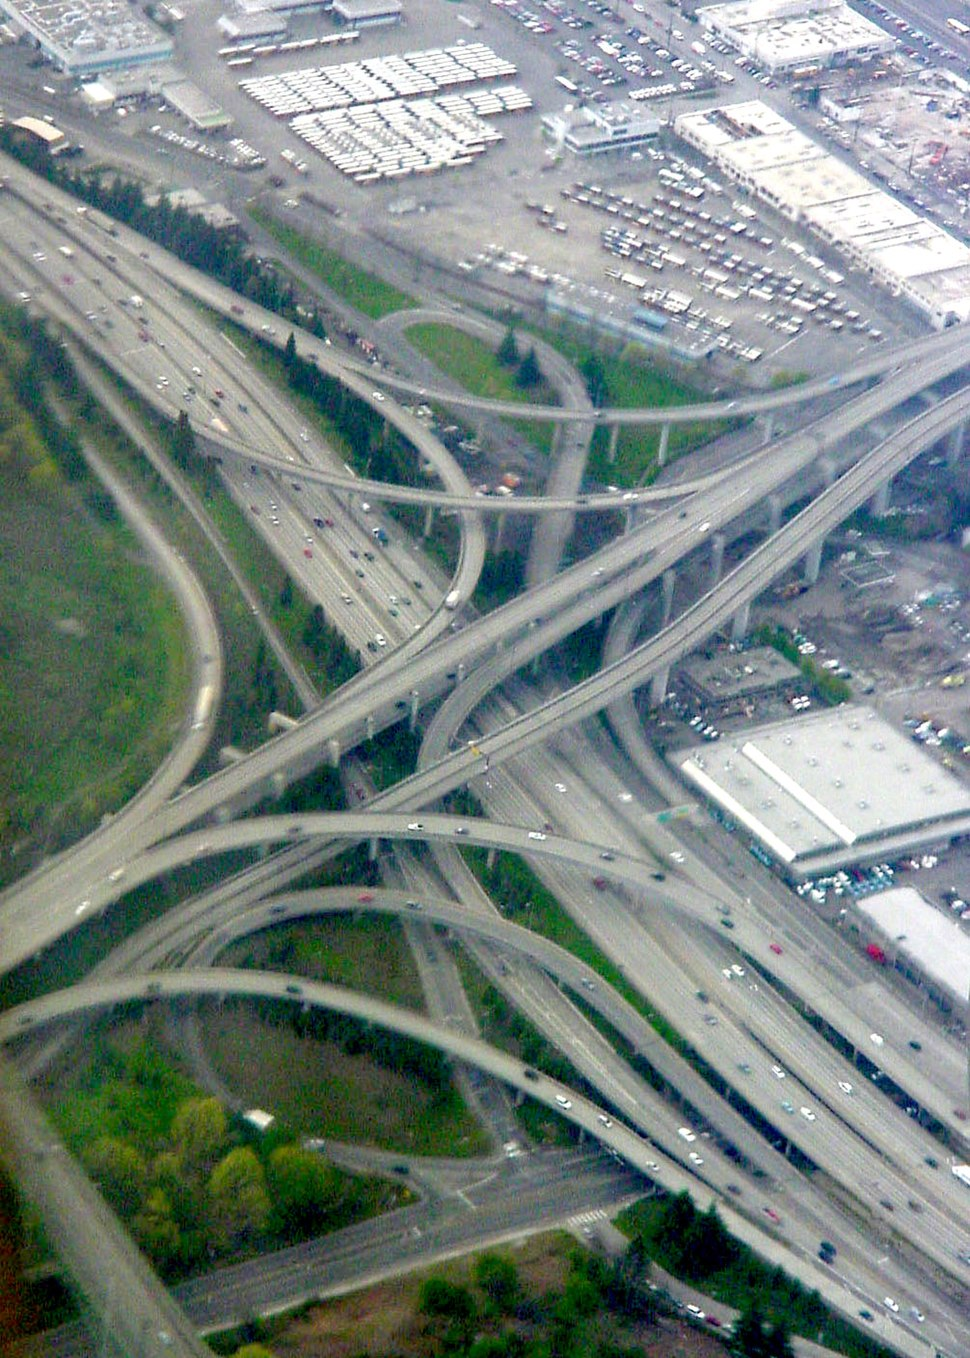 I-90 and I-5 cloverleaf seattle washington